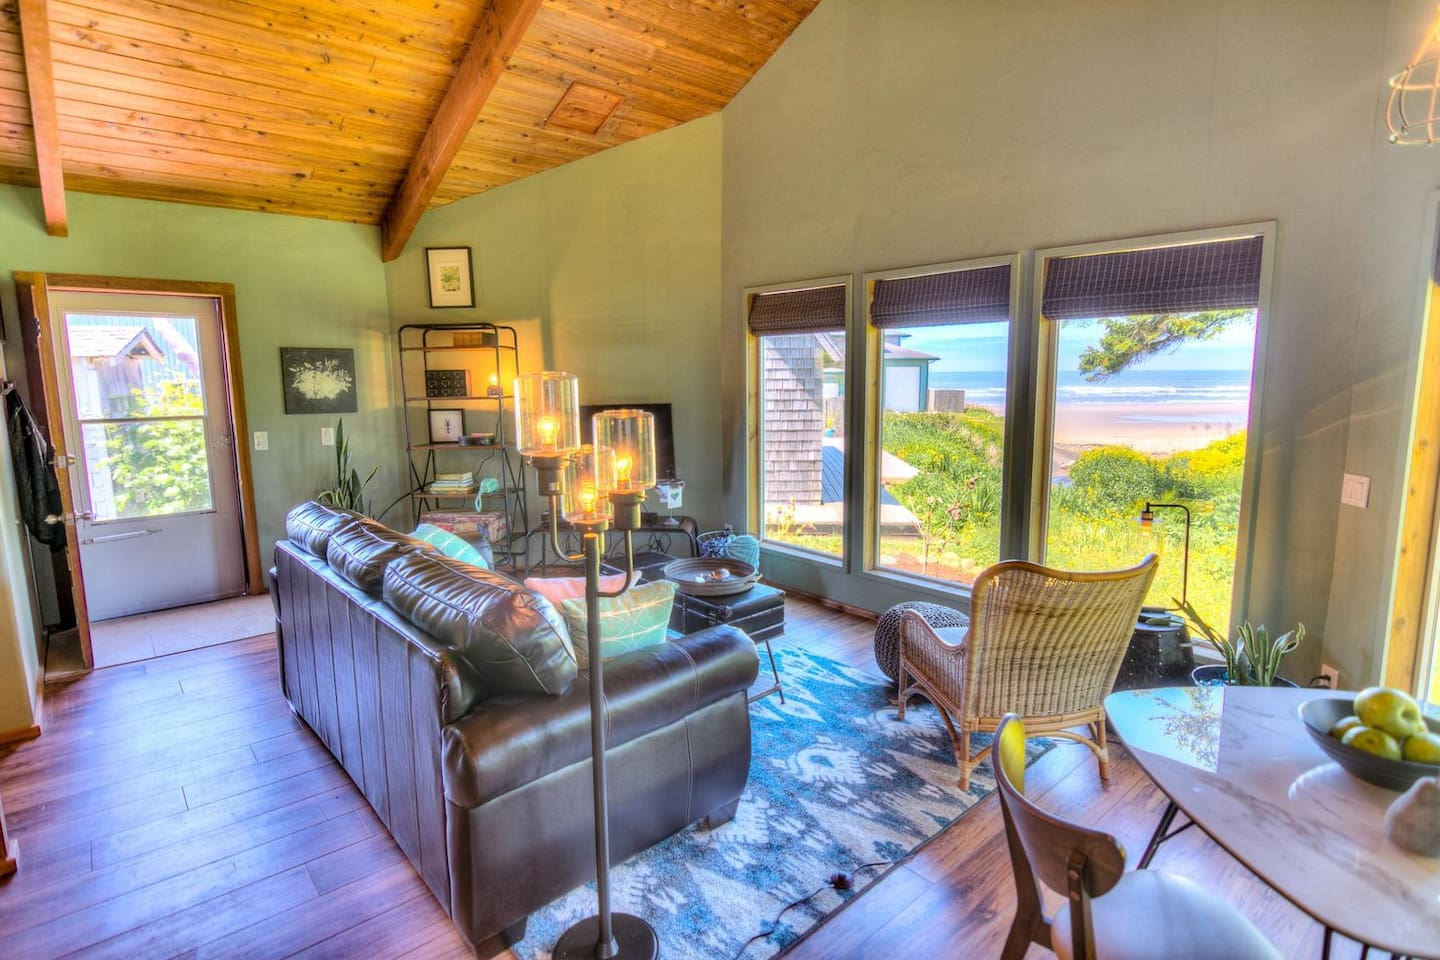 Living area with views of Starr Creek and the ocean.